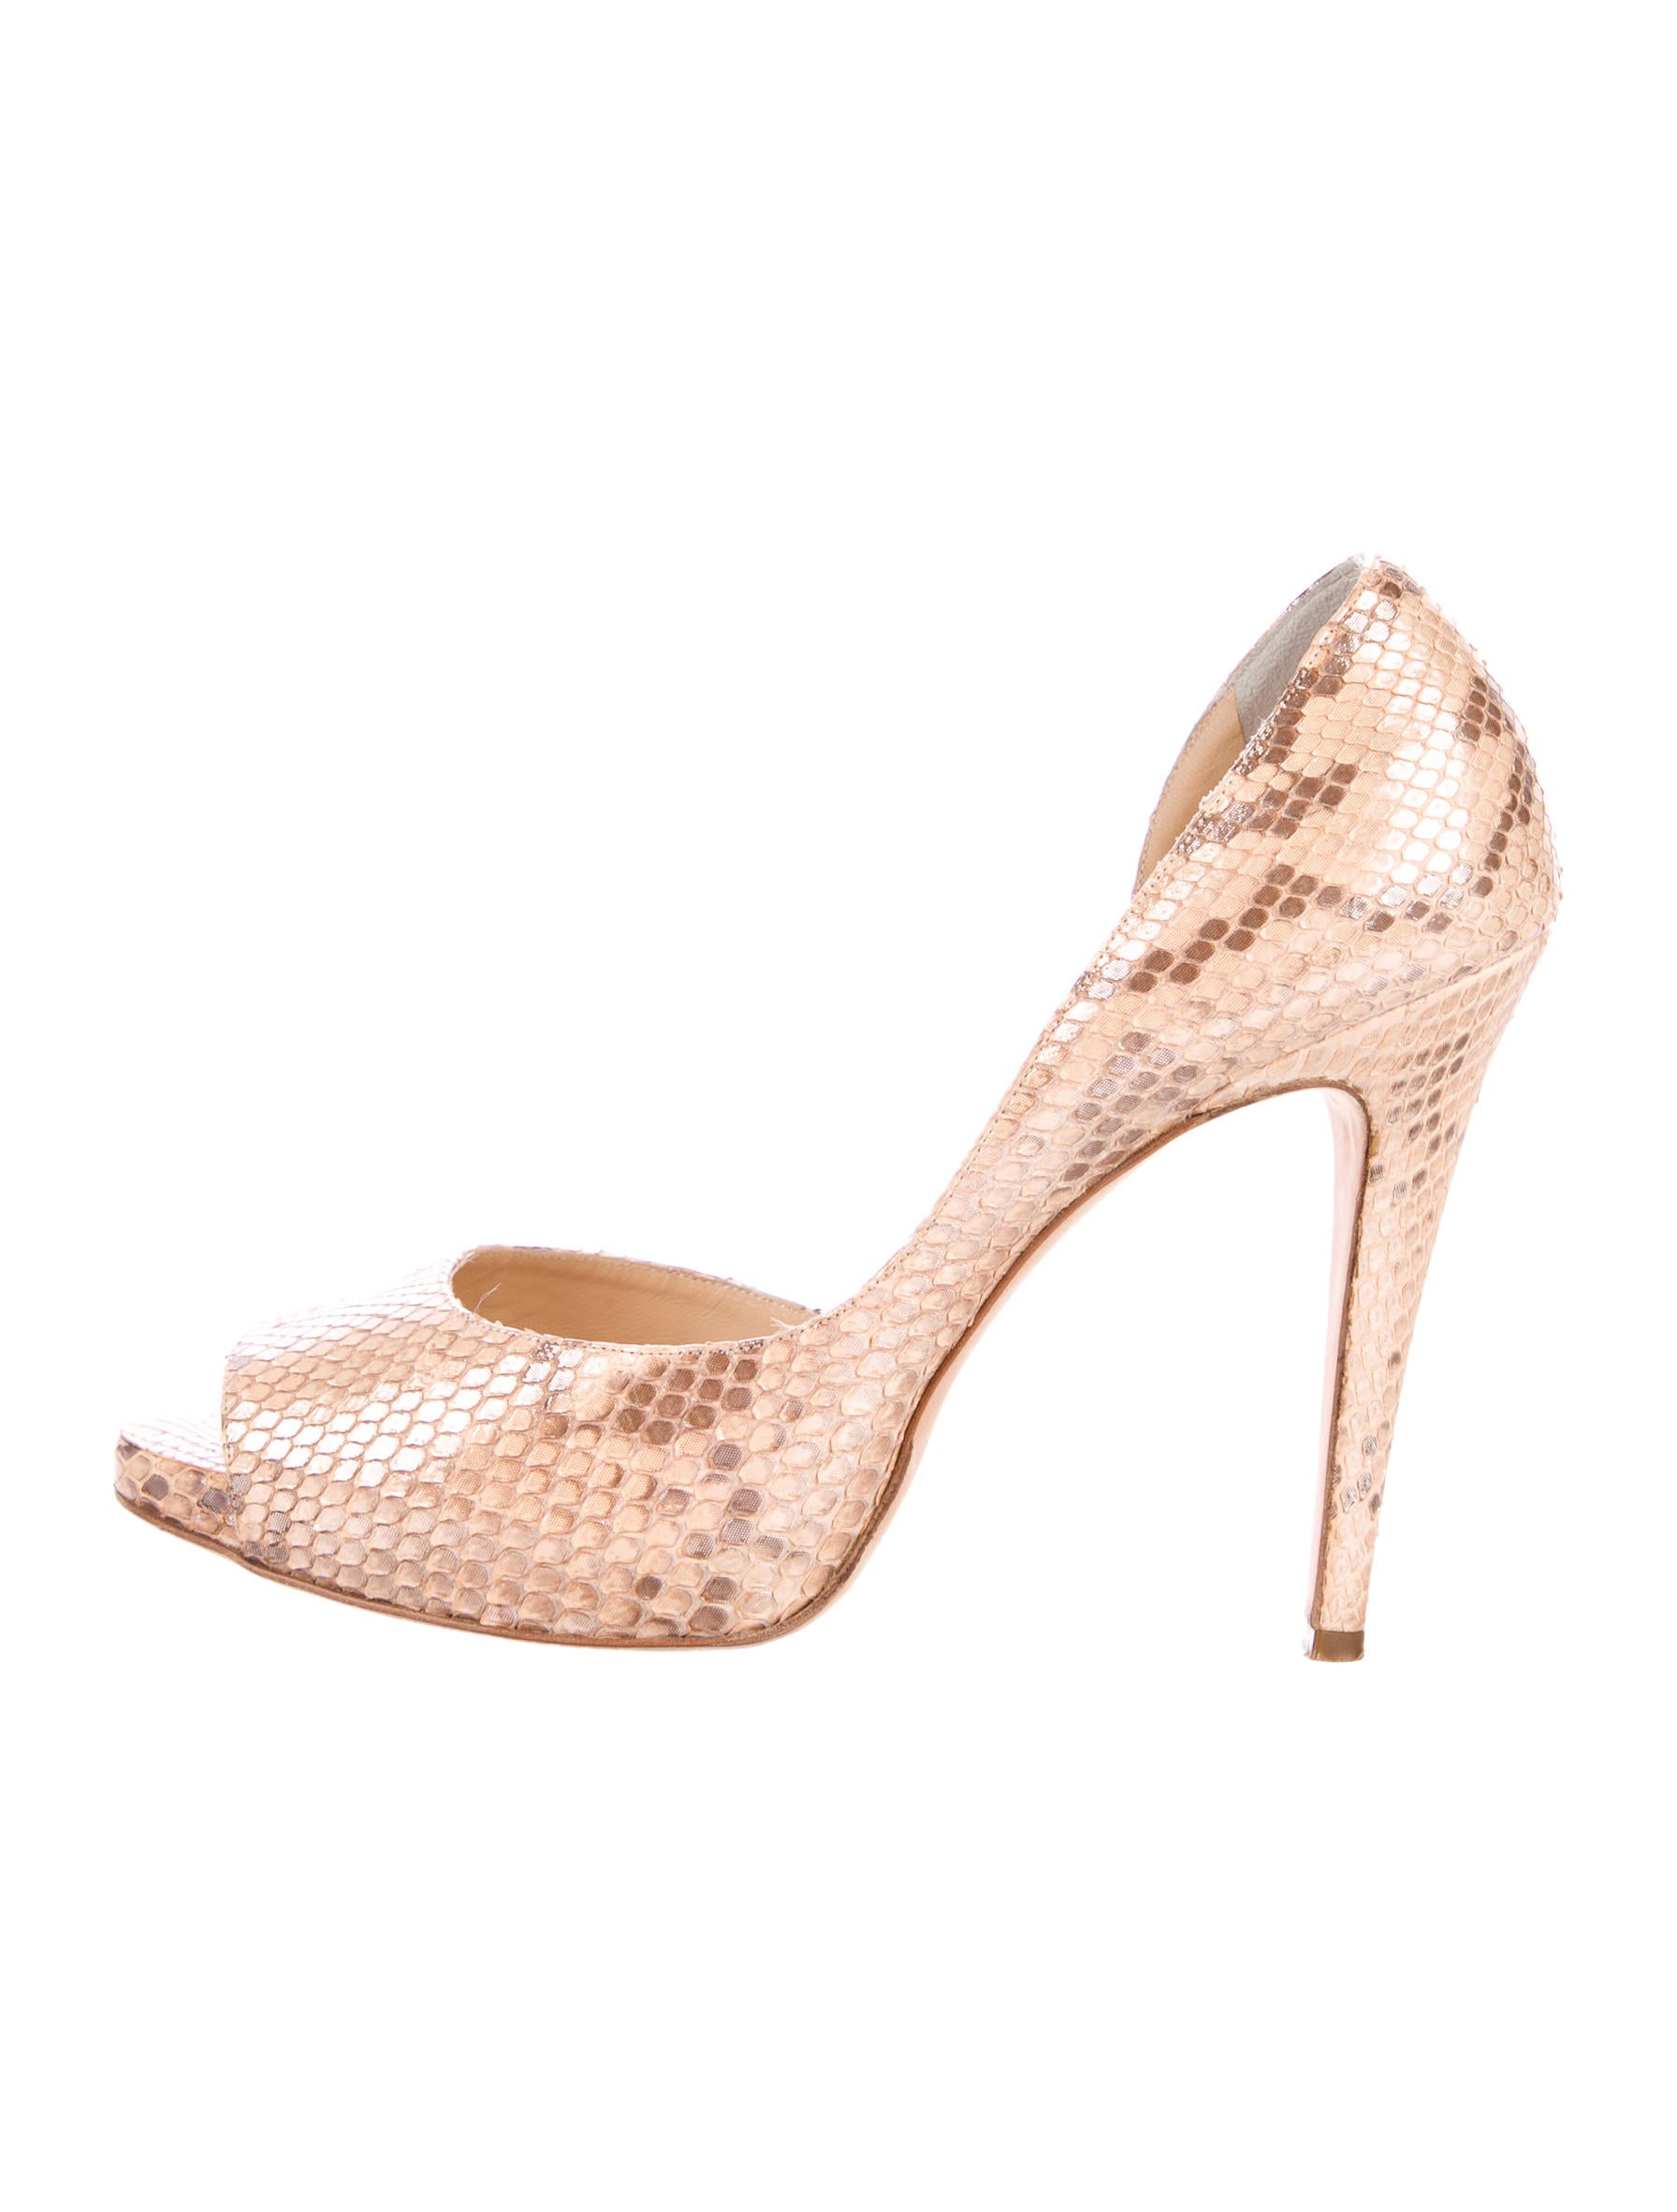 cheap nicekicks outlet newest Rodo Snakeskin Peep-Toe Pumps free shipping best store to get NPy64